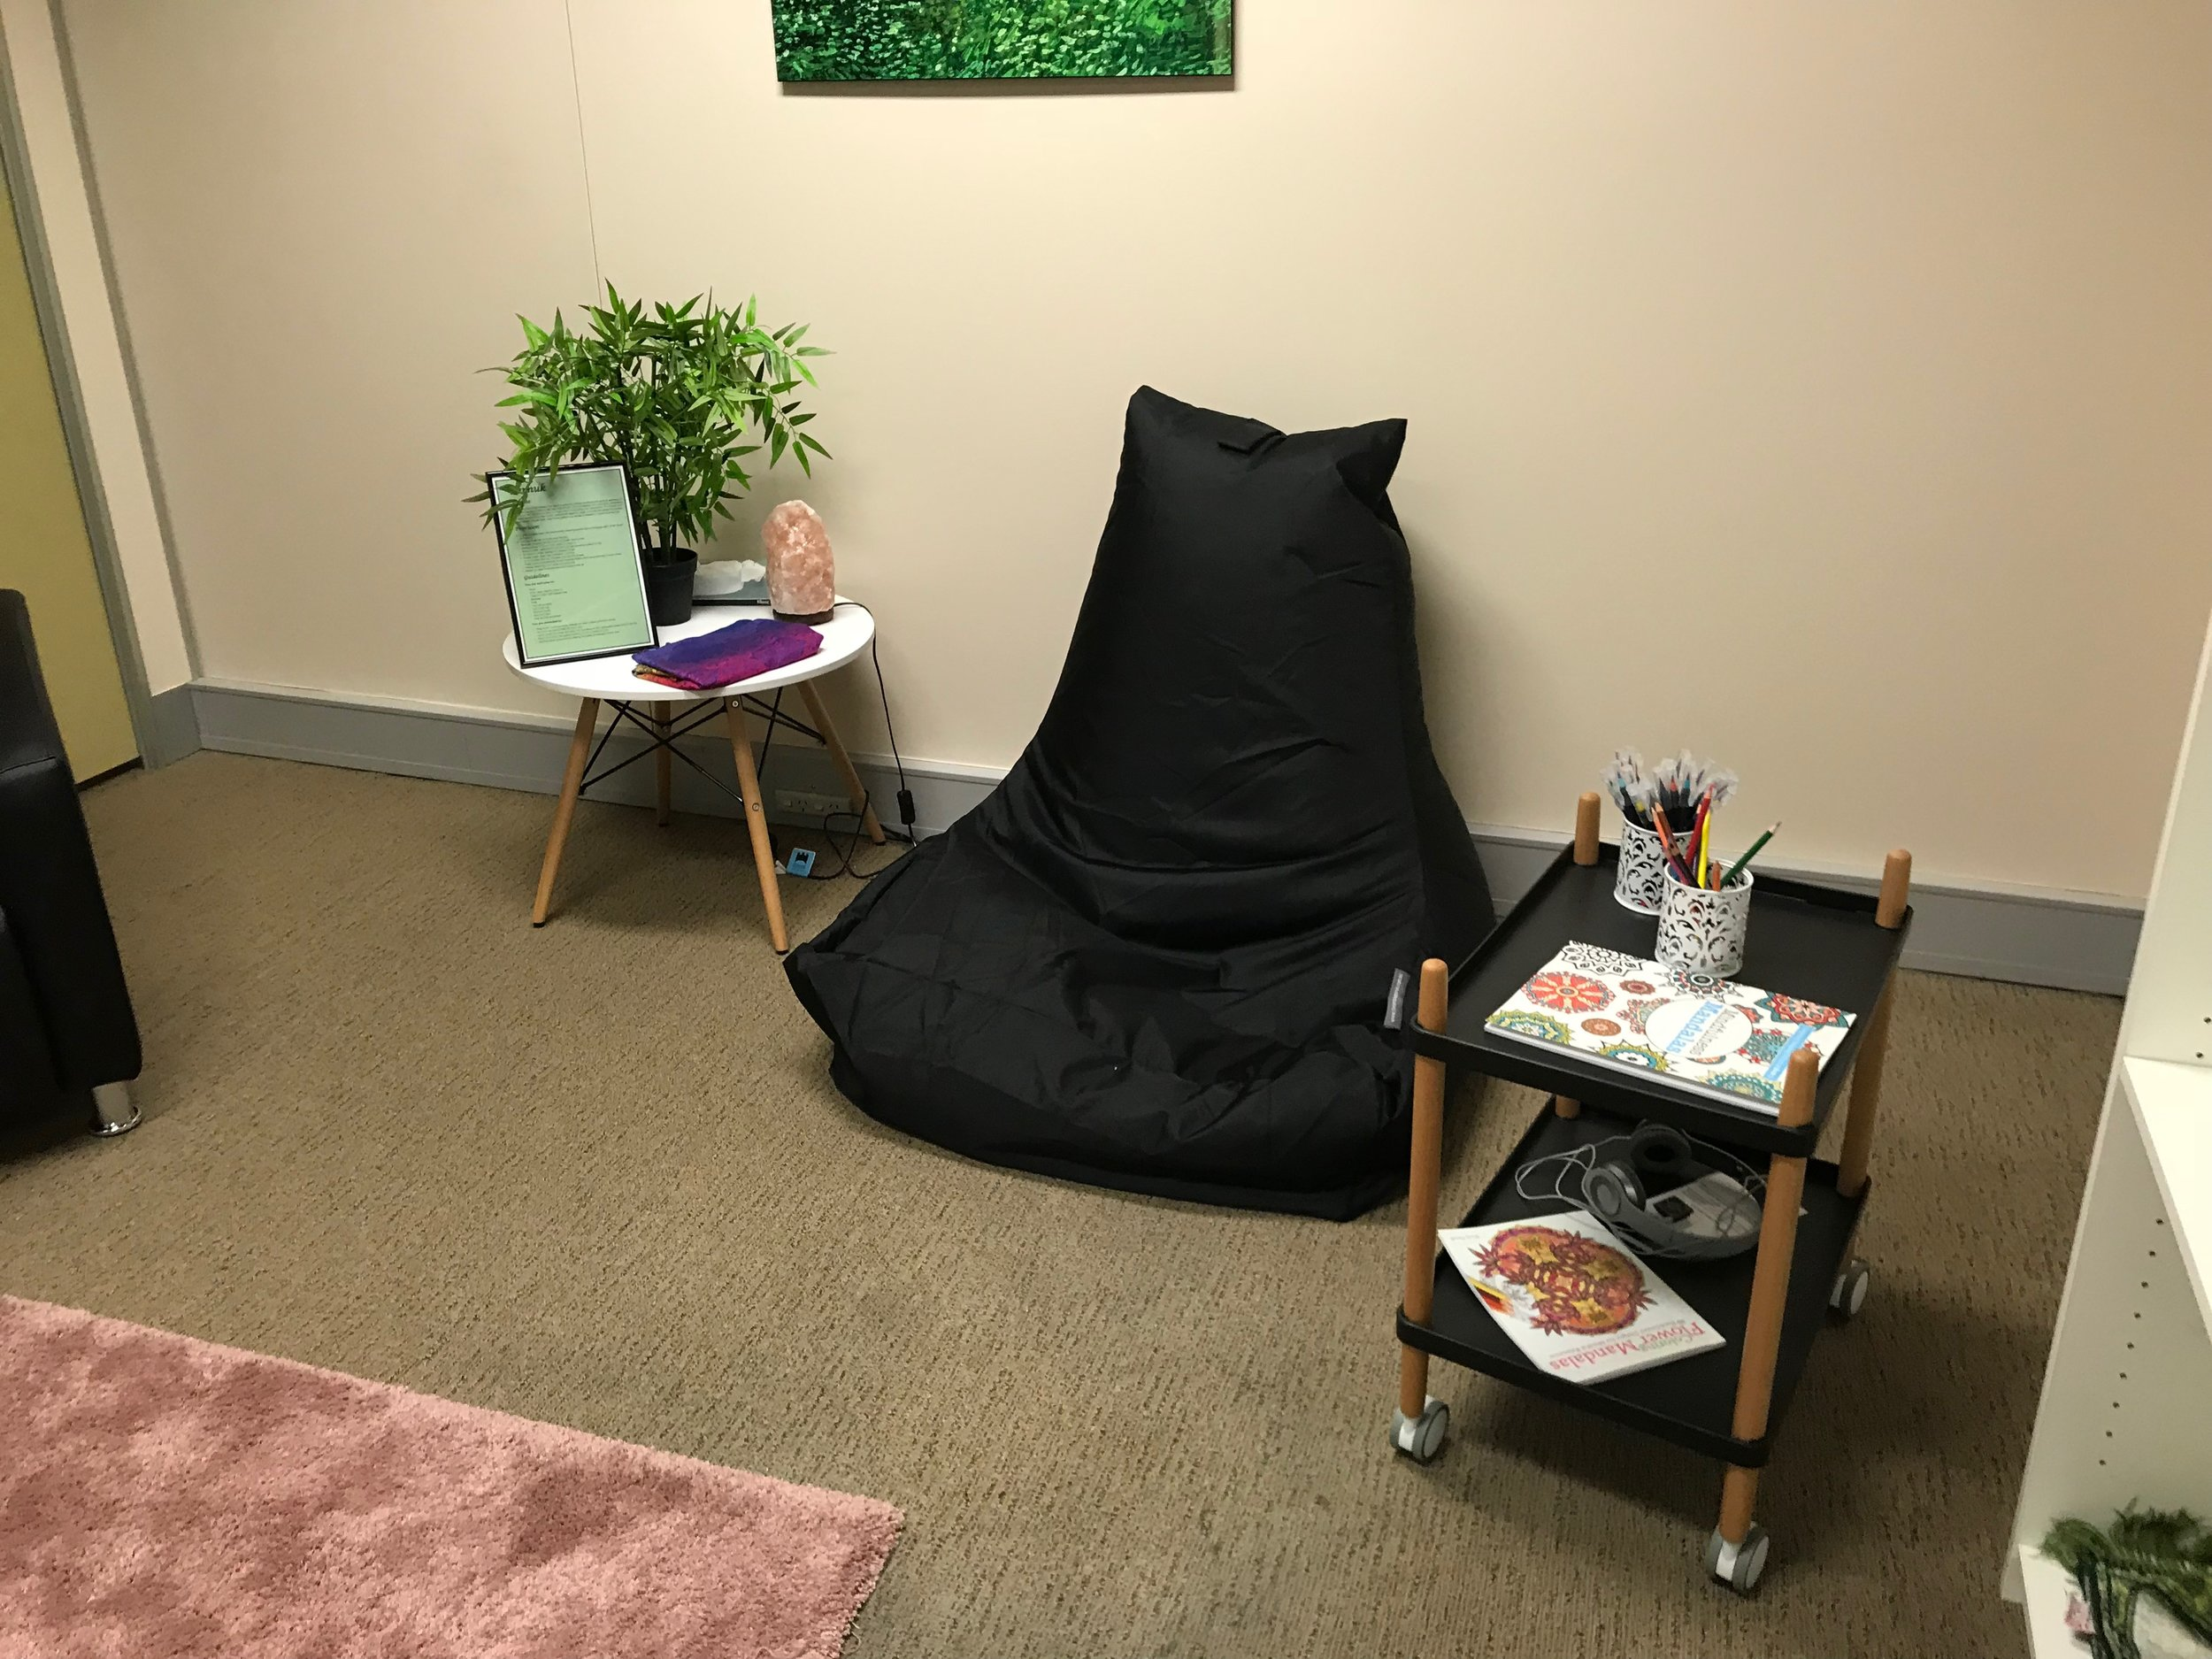 """""""Tarnuk"""" is a mindfulness/meditation/prayer room that supports staff working in difficult jobs. BSL runs guided meditations, one of the hubsters plays the harp once a fortnight, and there are also essential oils, guided meditations, books, colouring and so on for free use."""